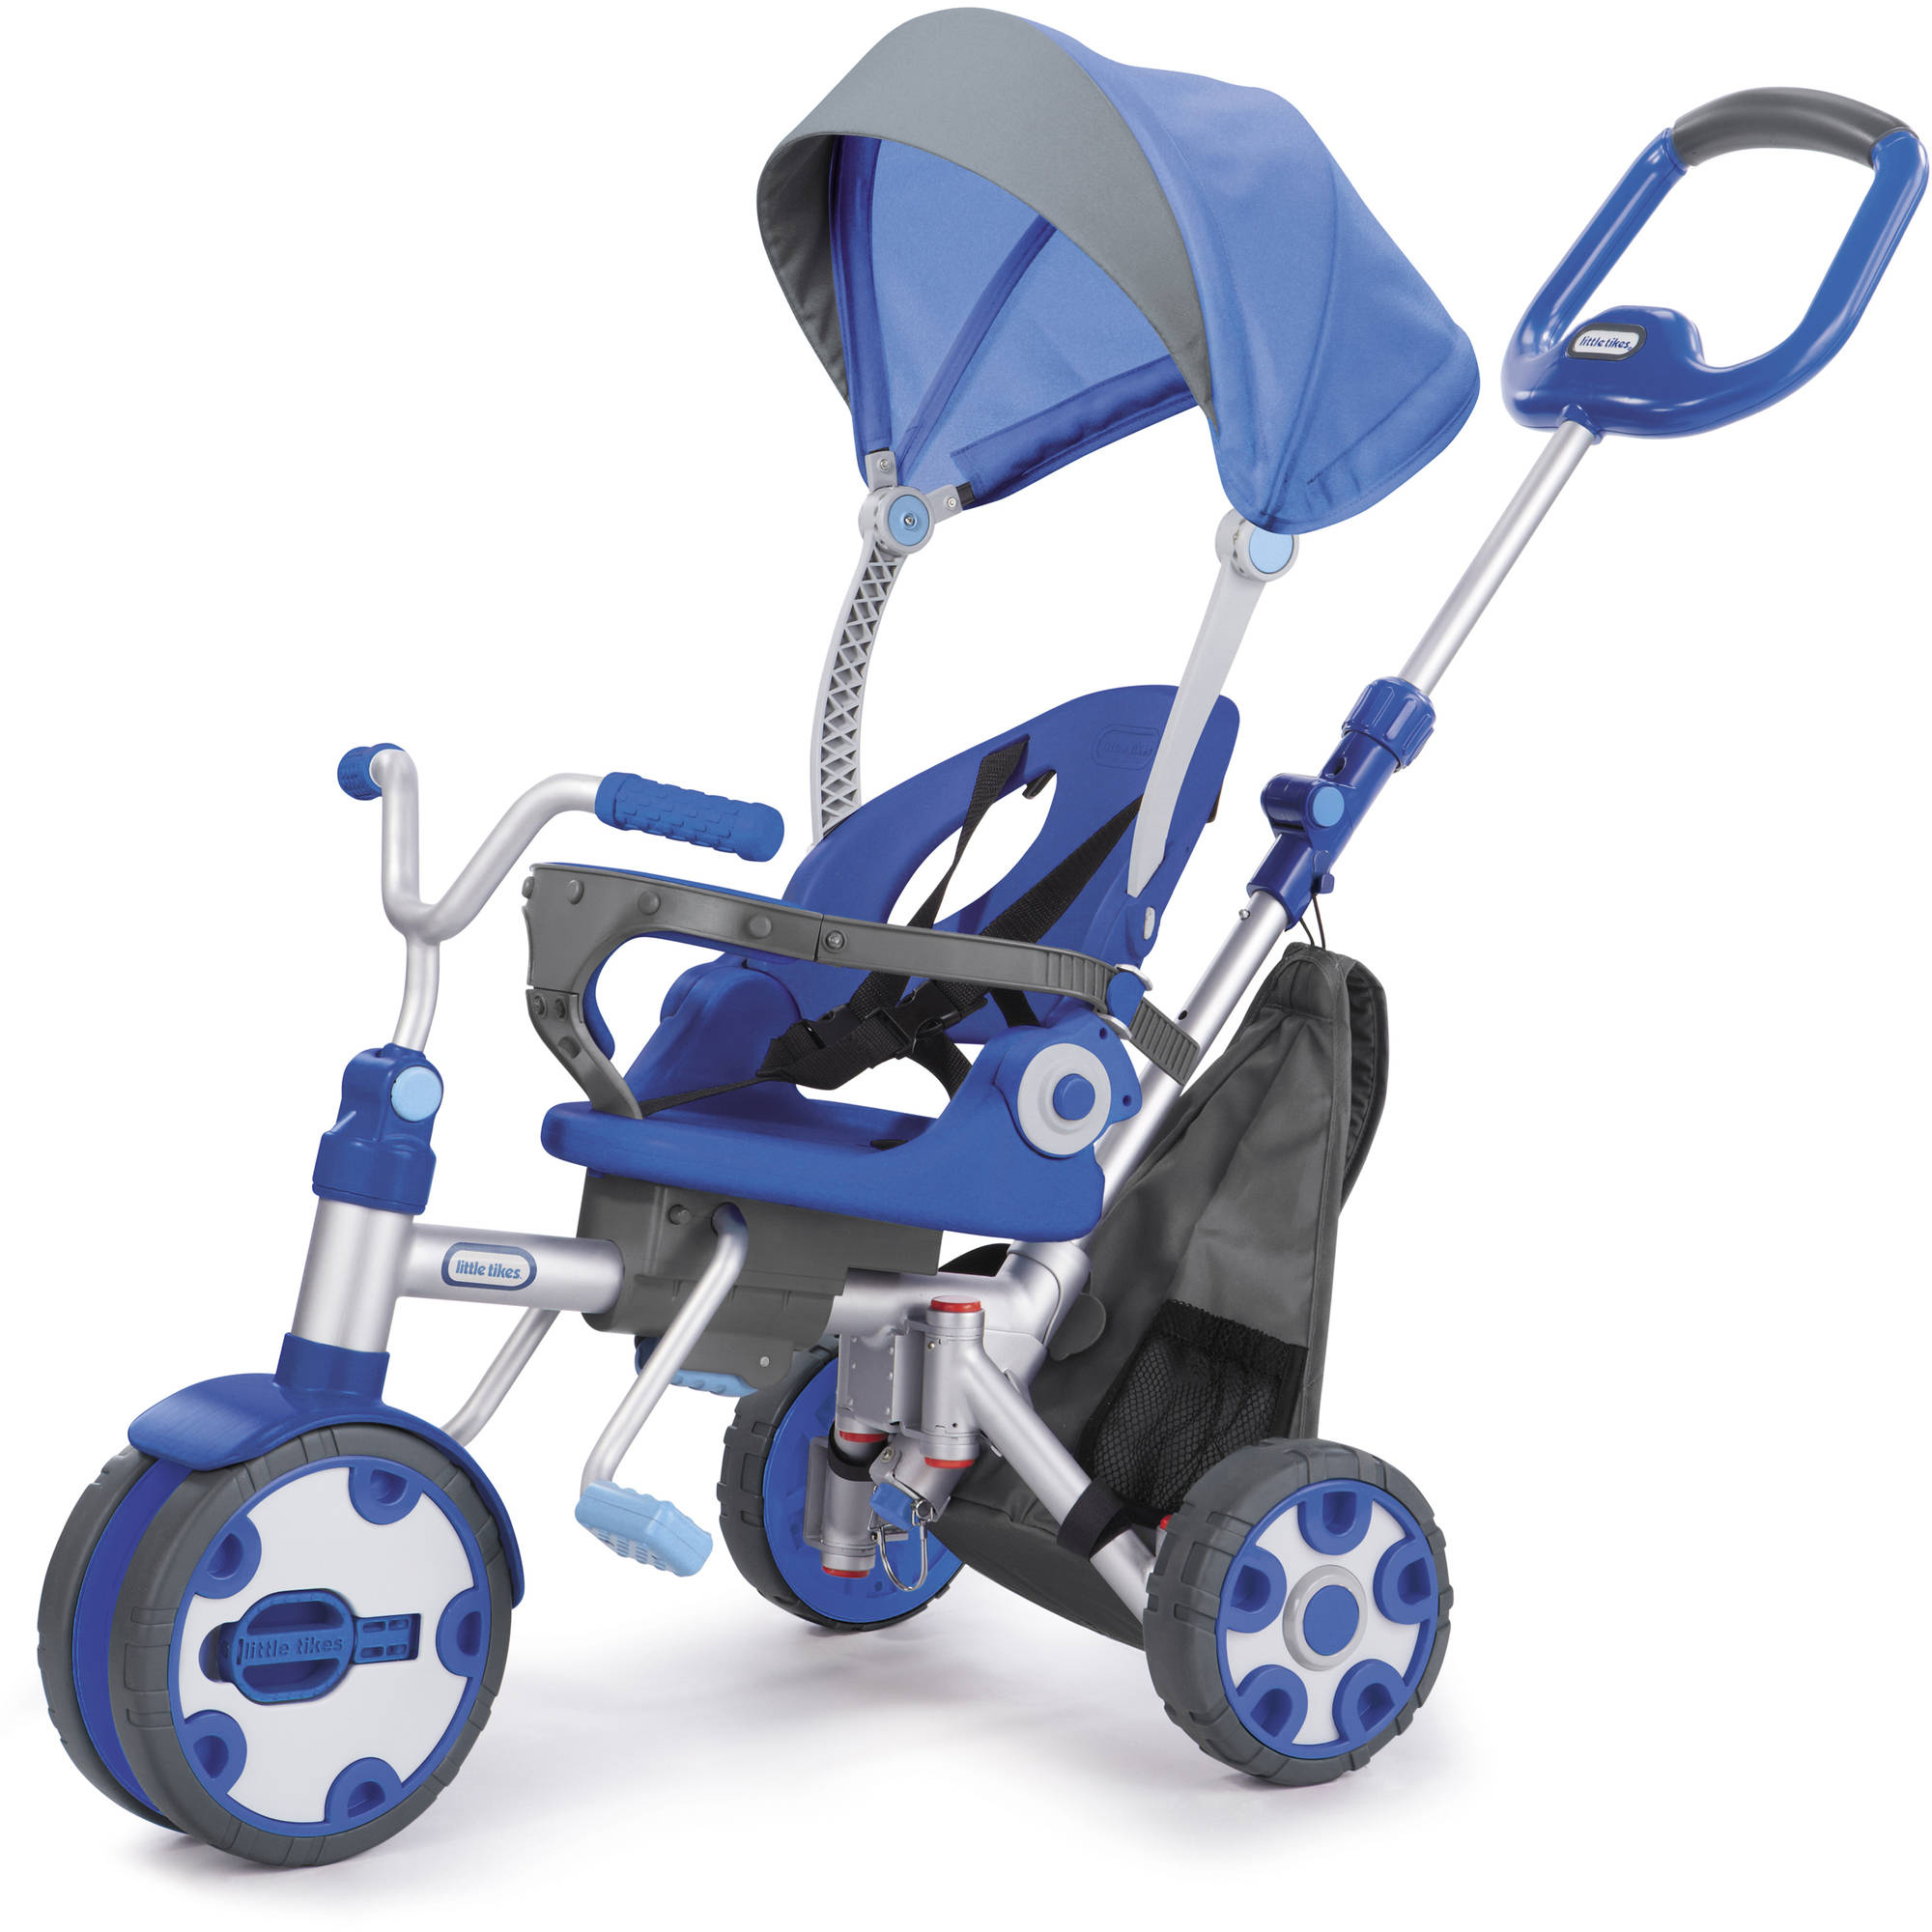 Little Tikes Fold 'n Go 4-in-1 Trike, Blue Grey by Little Tikes